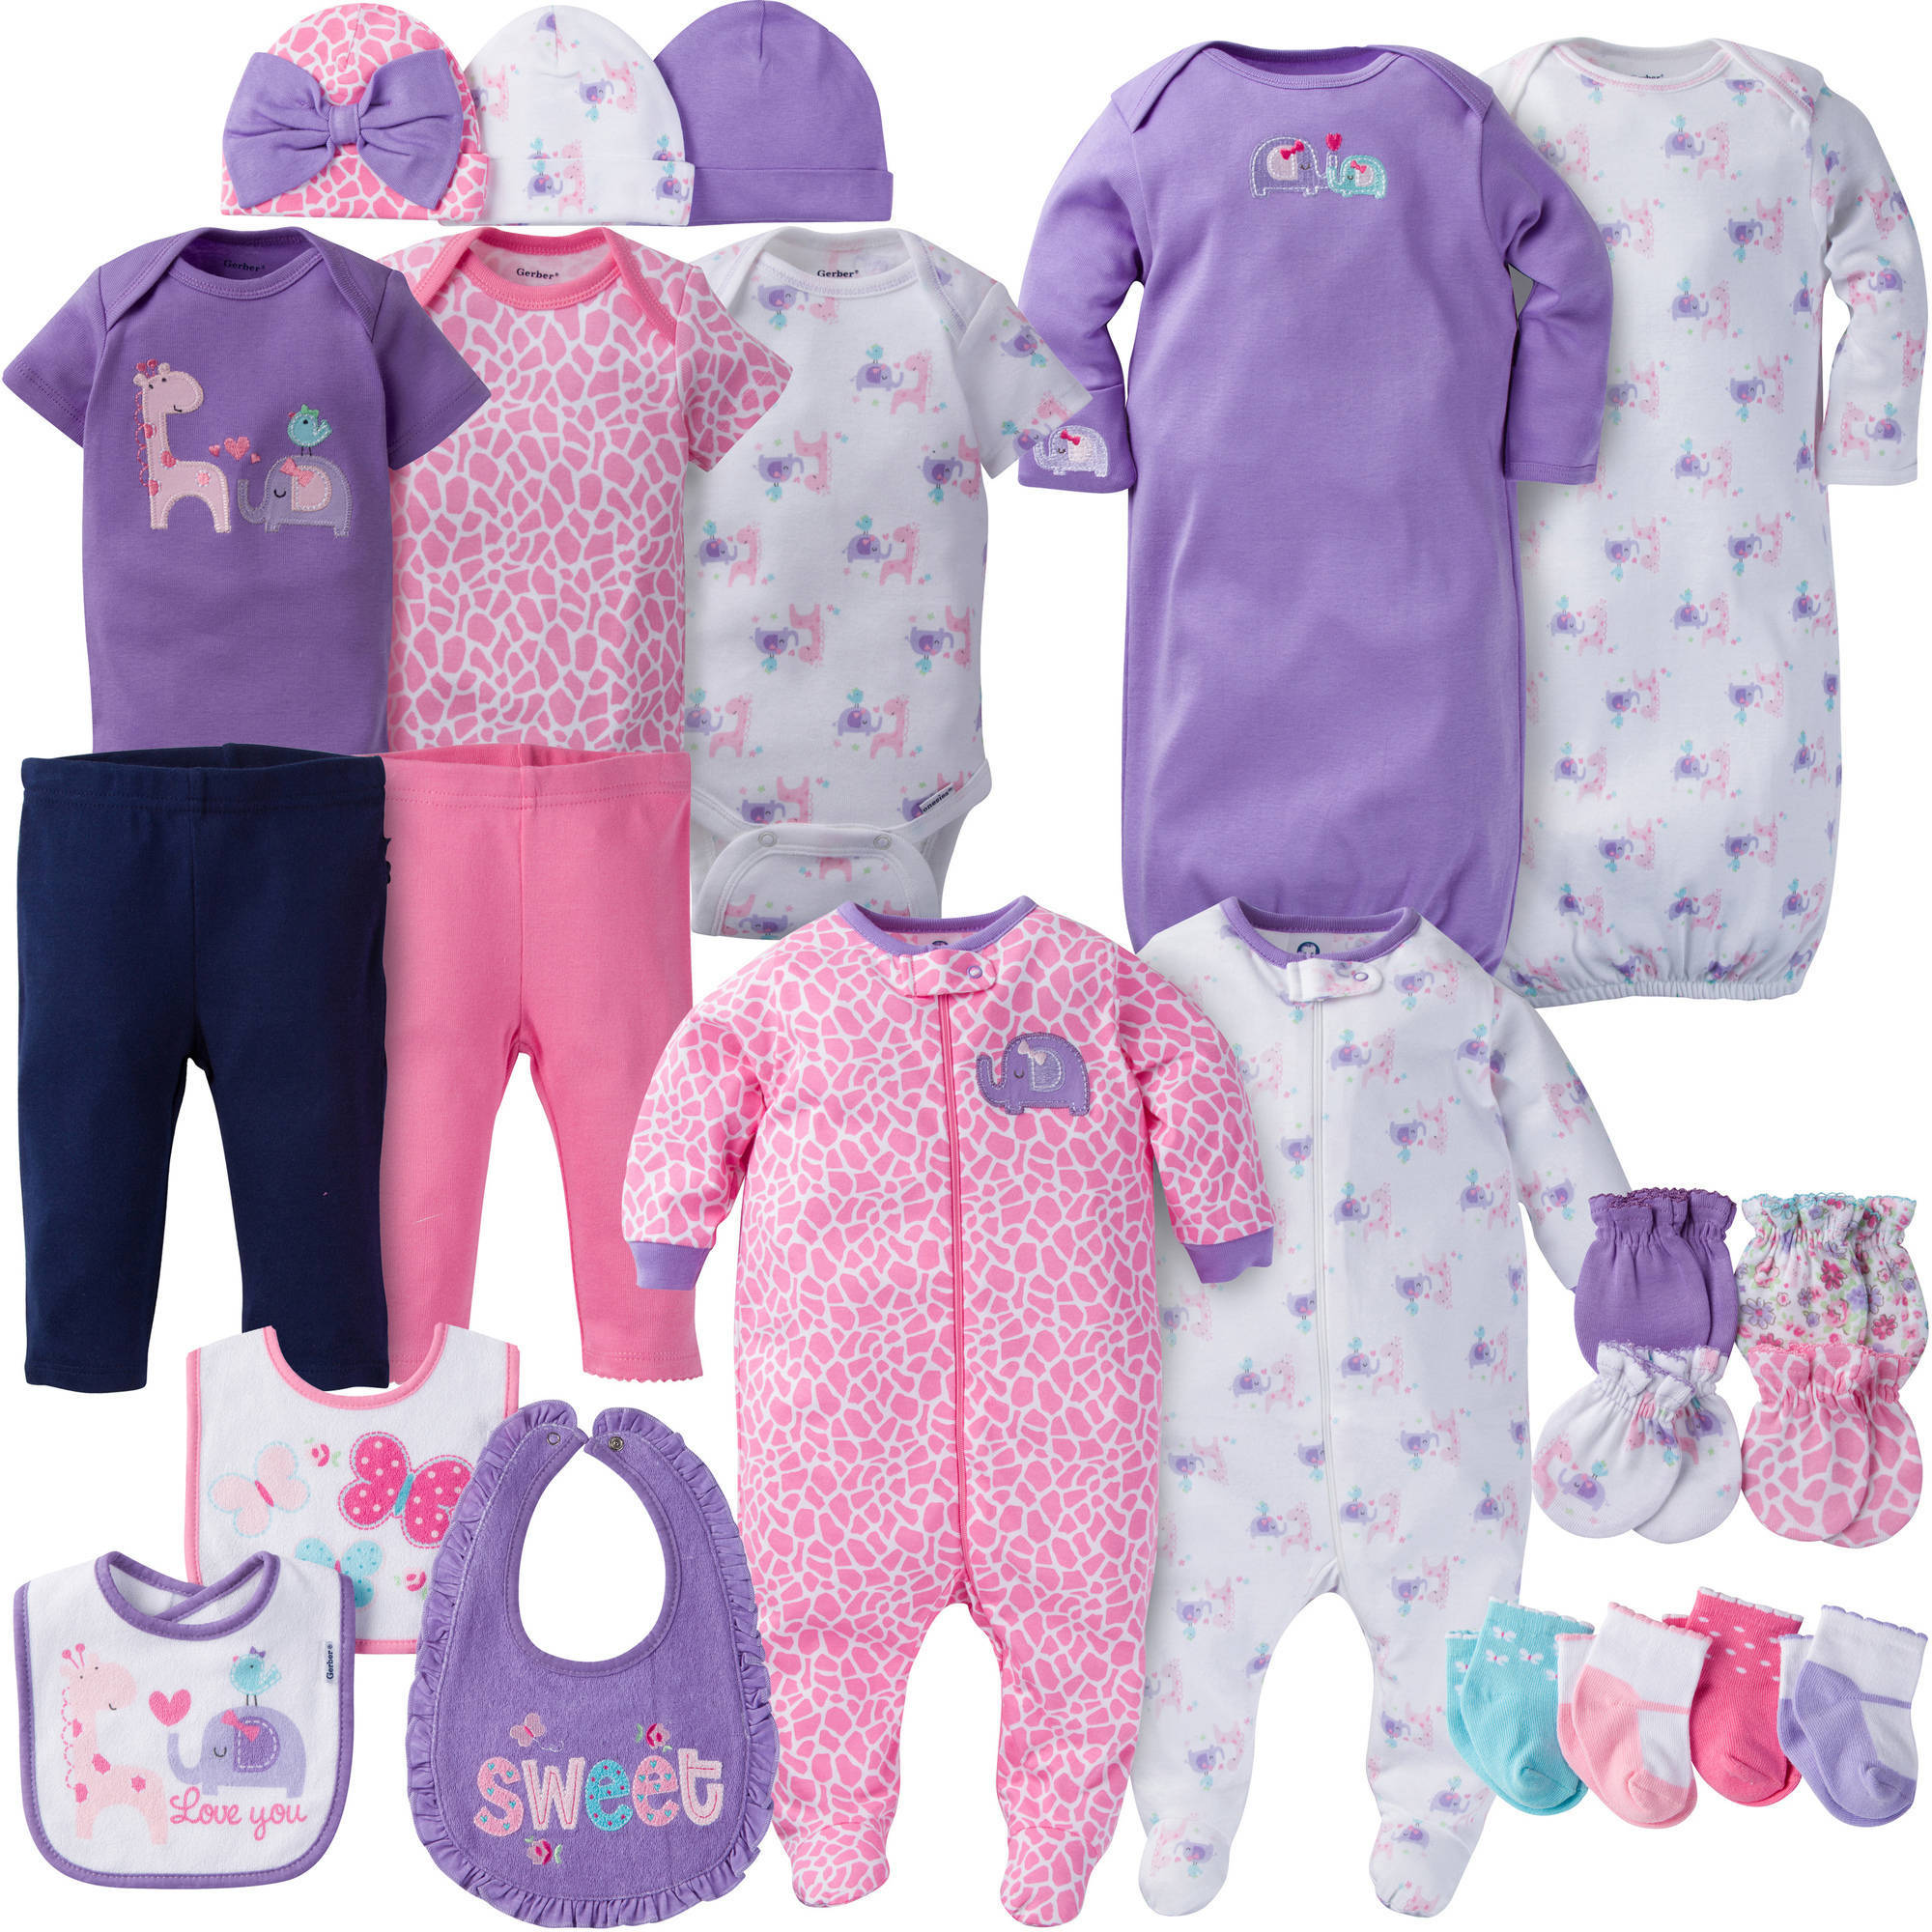 Gerber Newborn Baby Girl Perfect Baby Shower Gift Layette Set, 23-Piece